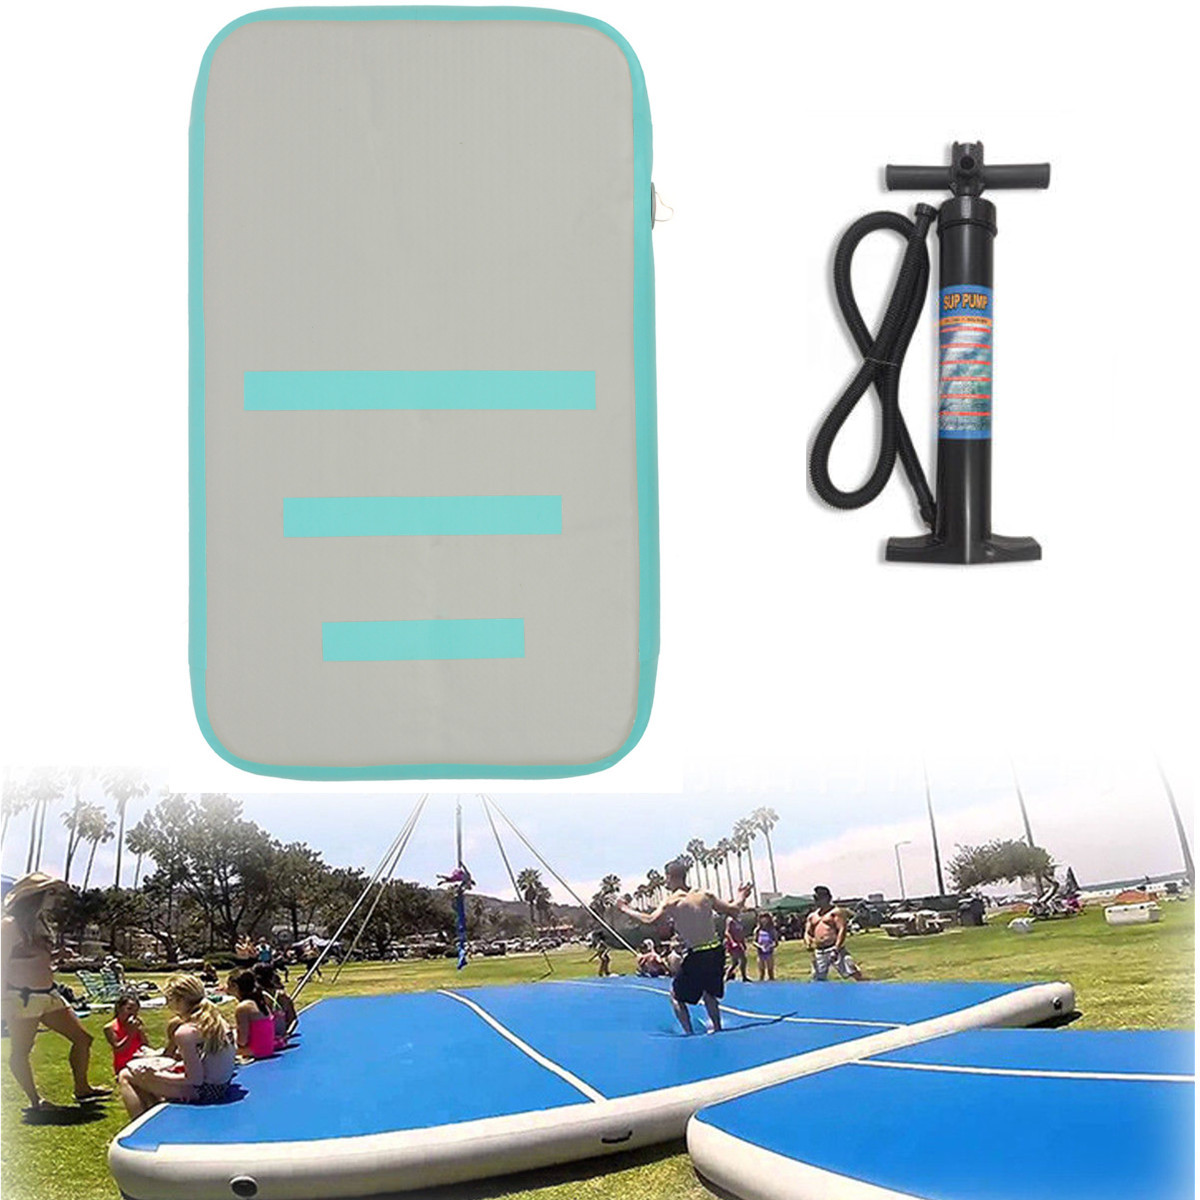 1Pcs 3.2ft x 1.96ft Air Track  Inflatable Training Mat Tumbling Gymnastics Mats Gym Exercise Pad with Hand Pump Children Safe